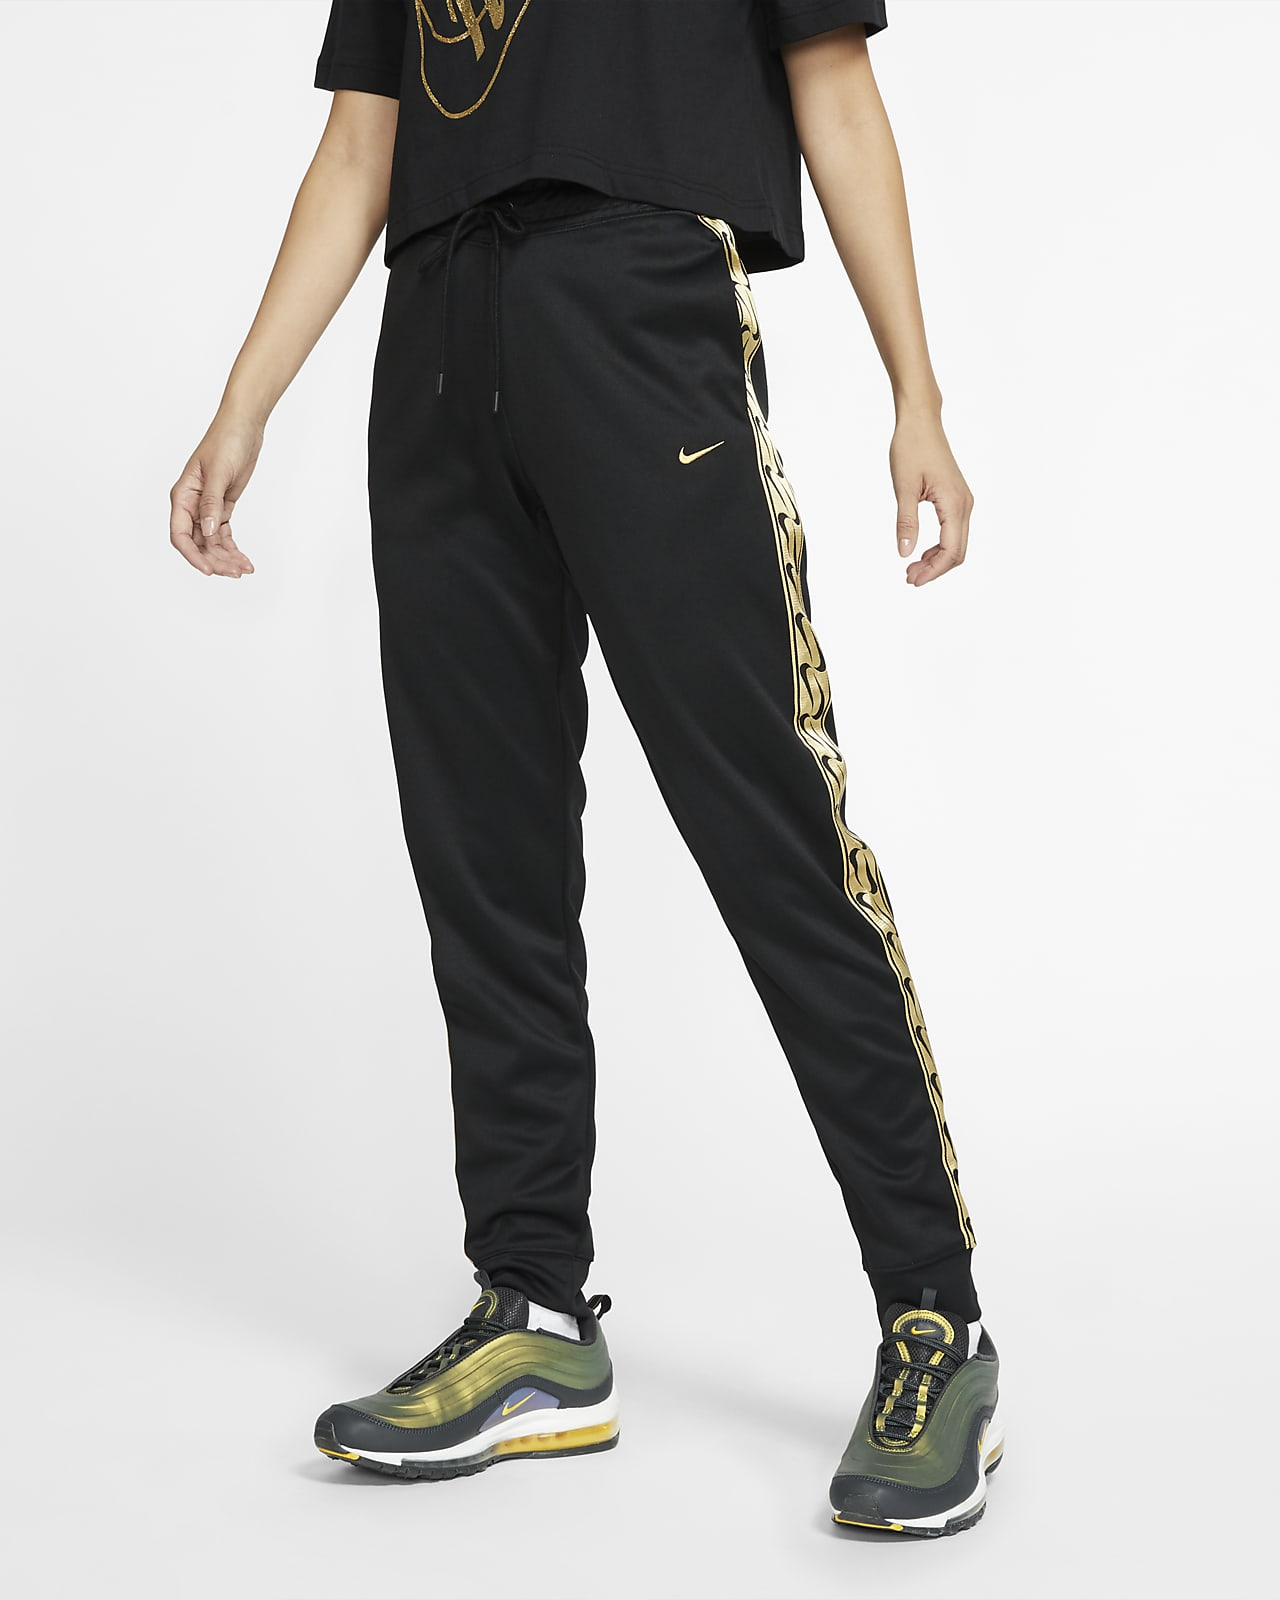 Joggers vs Sweatpants: How They Compare and How to Wear Them